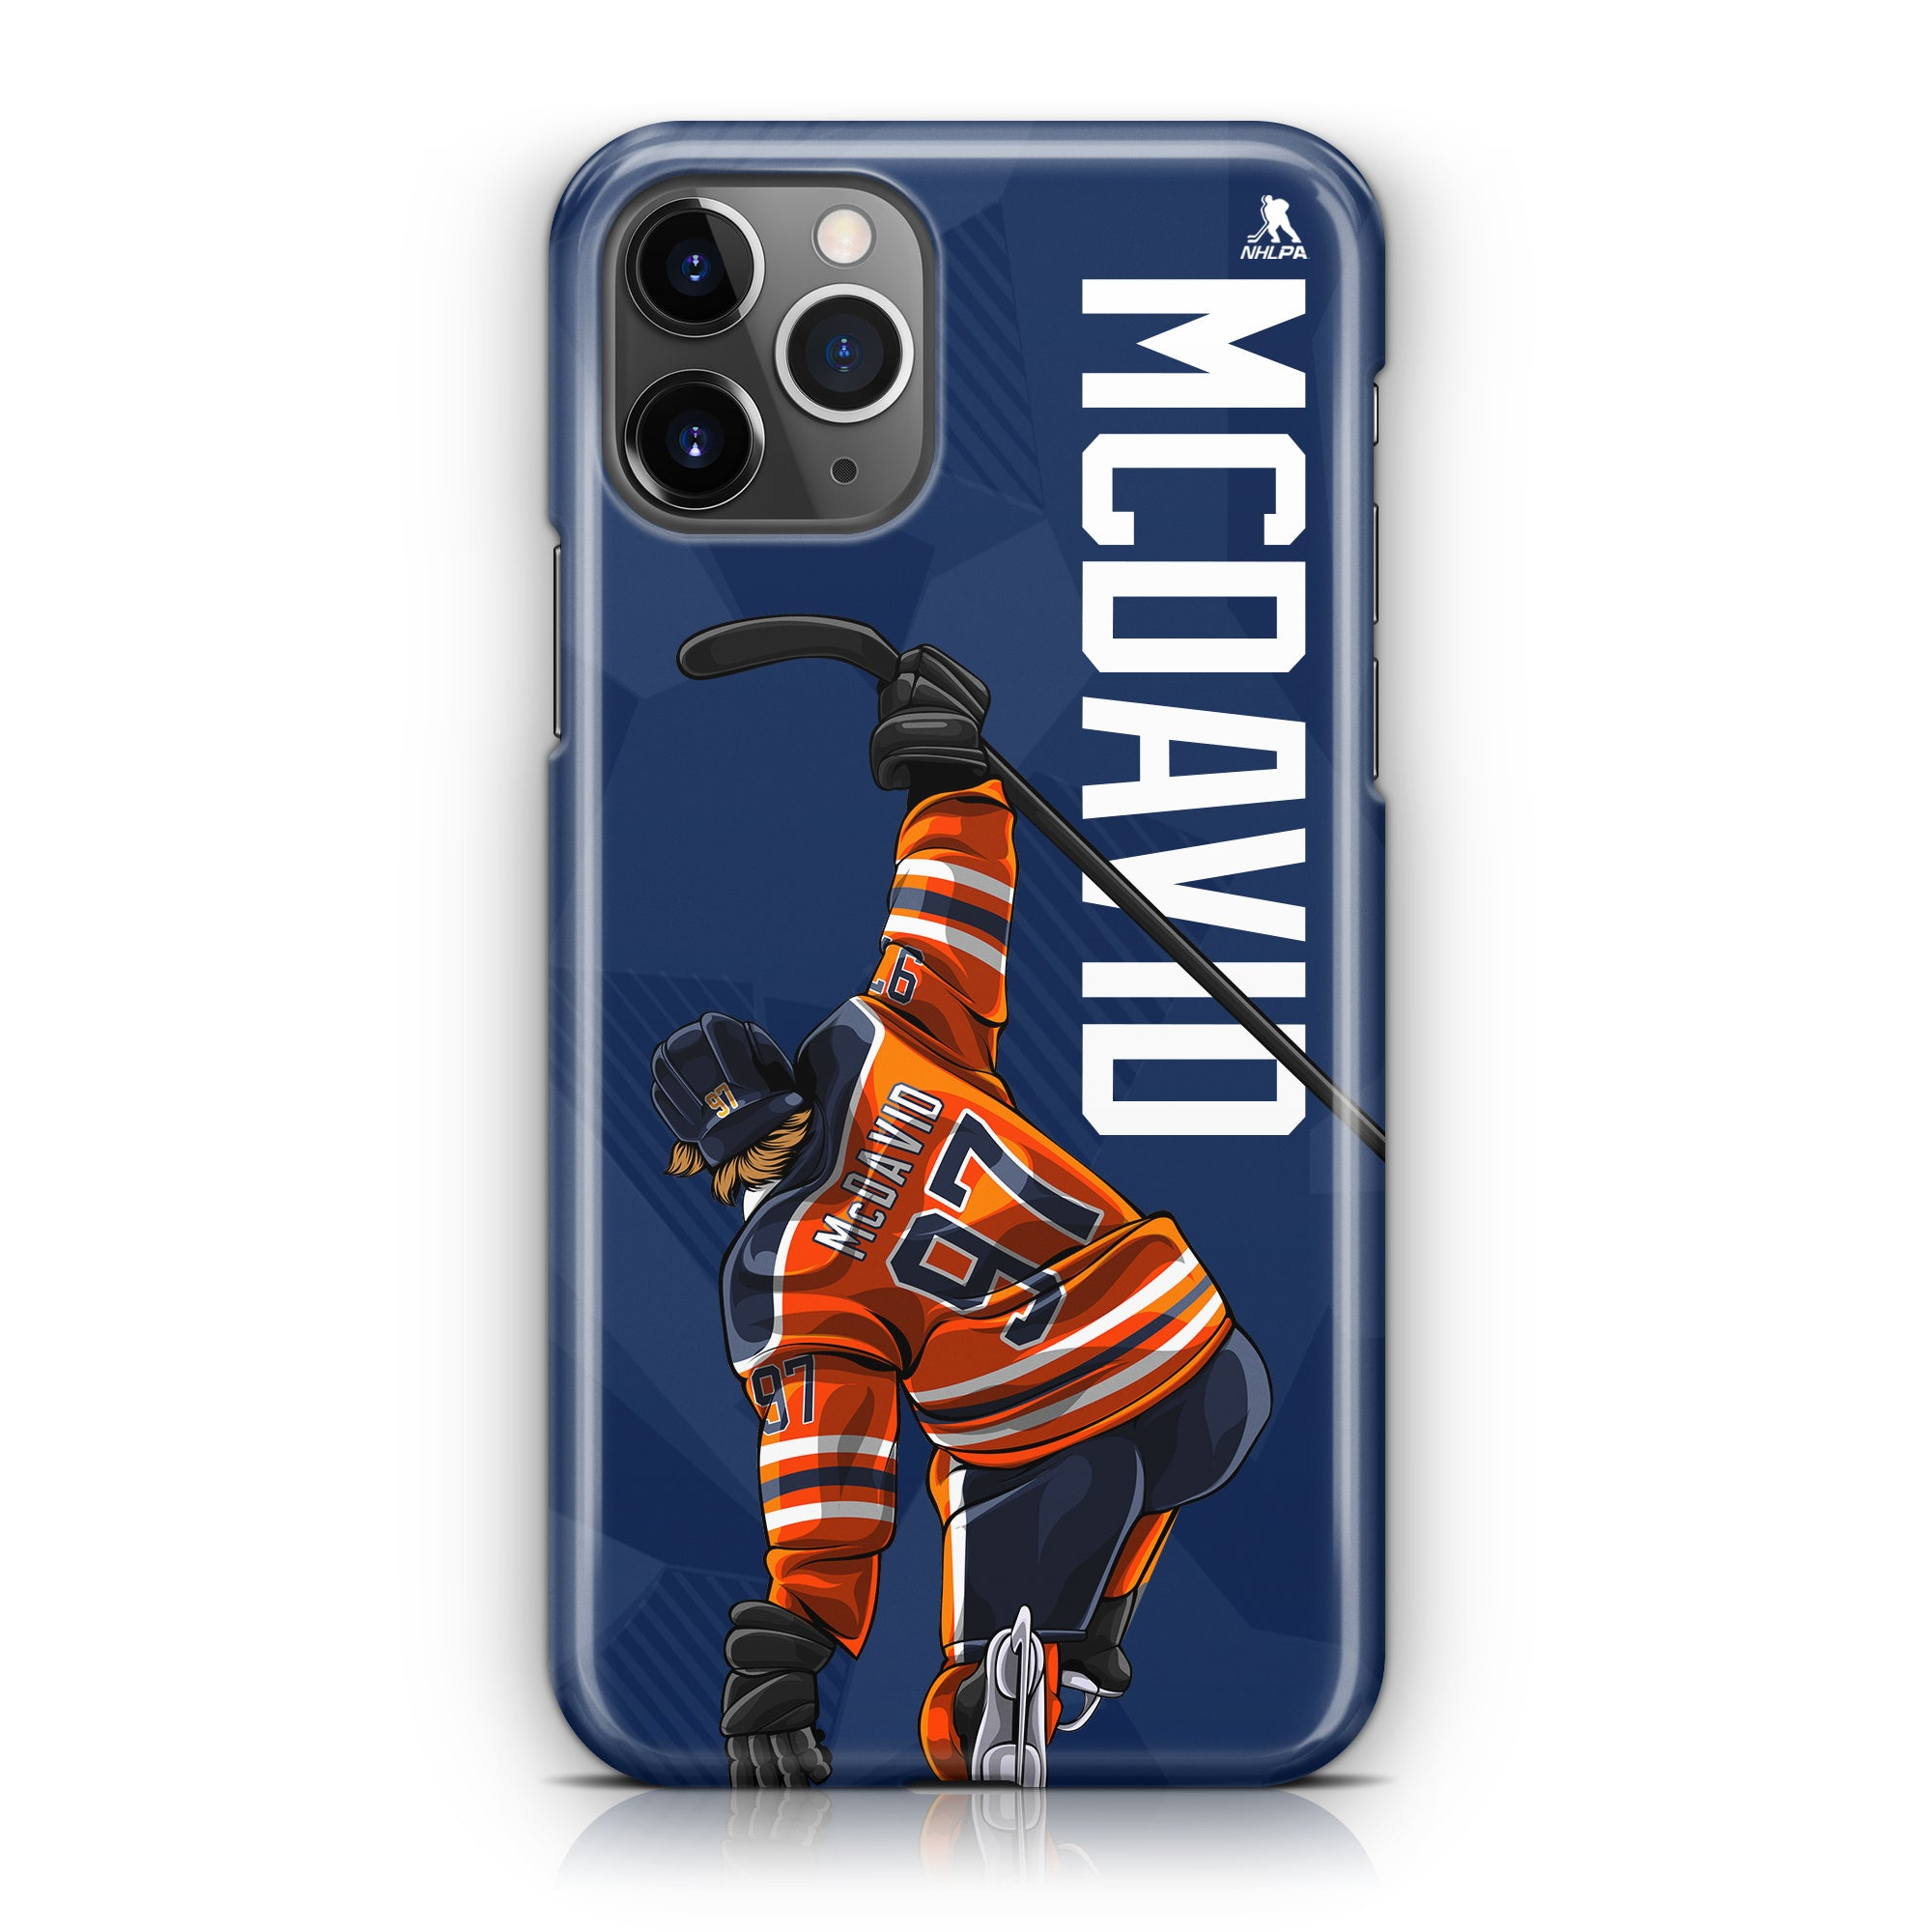 McDavid Star Series 2.0 Case